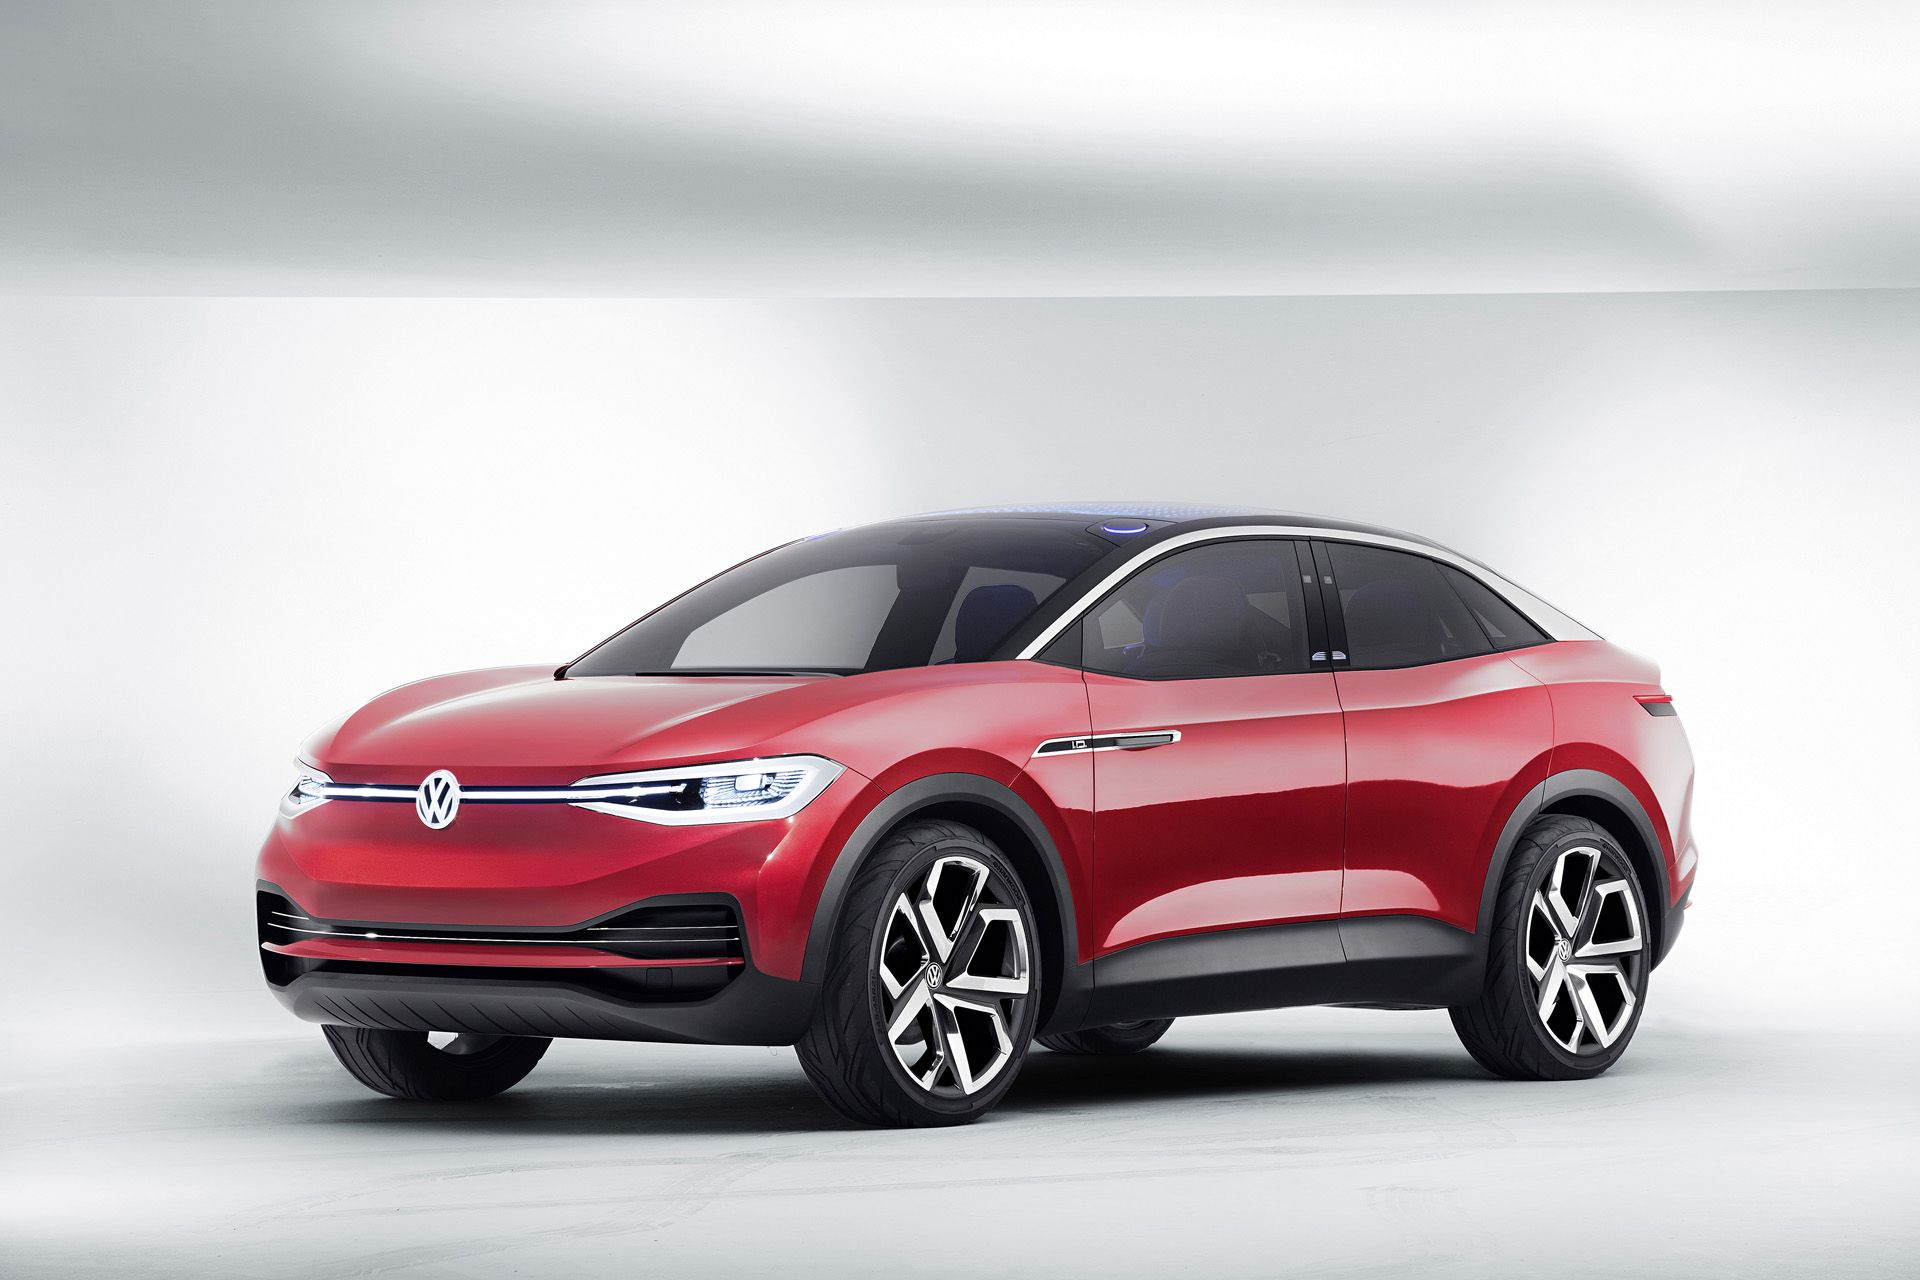 Volkswagen 2020 Electric Suv Prices Electric Cars